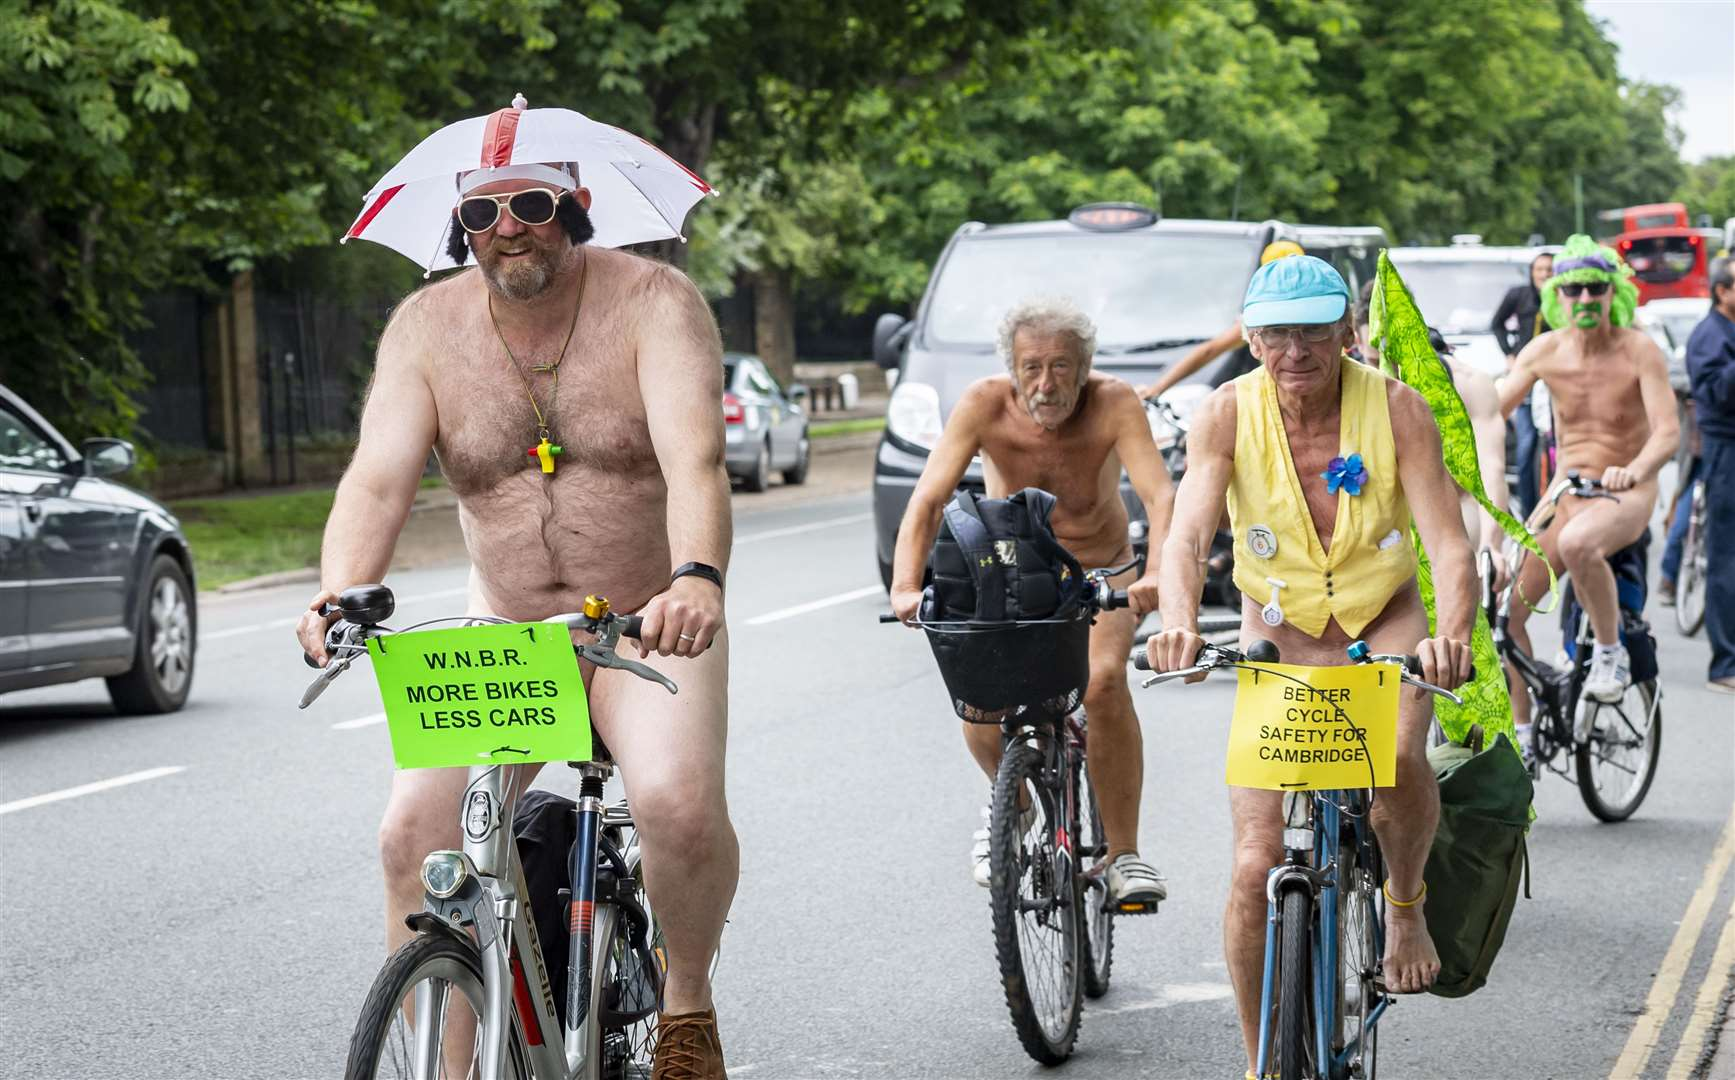 The Naked Bike Ride 2019 sets off from Midsummer Common. Picture: Keith Heppell